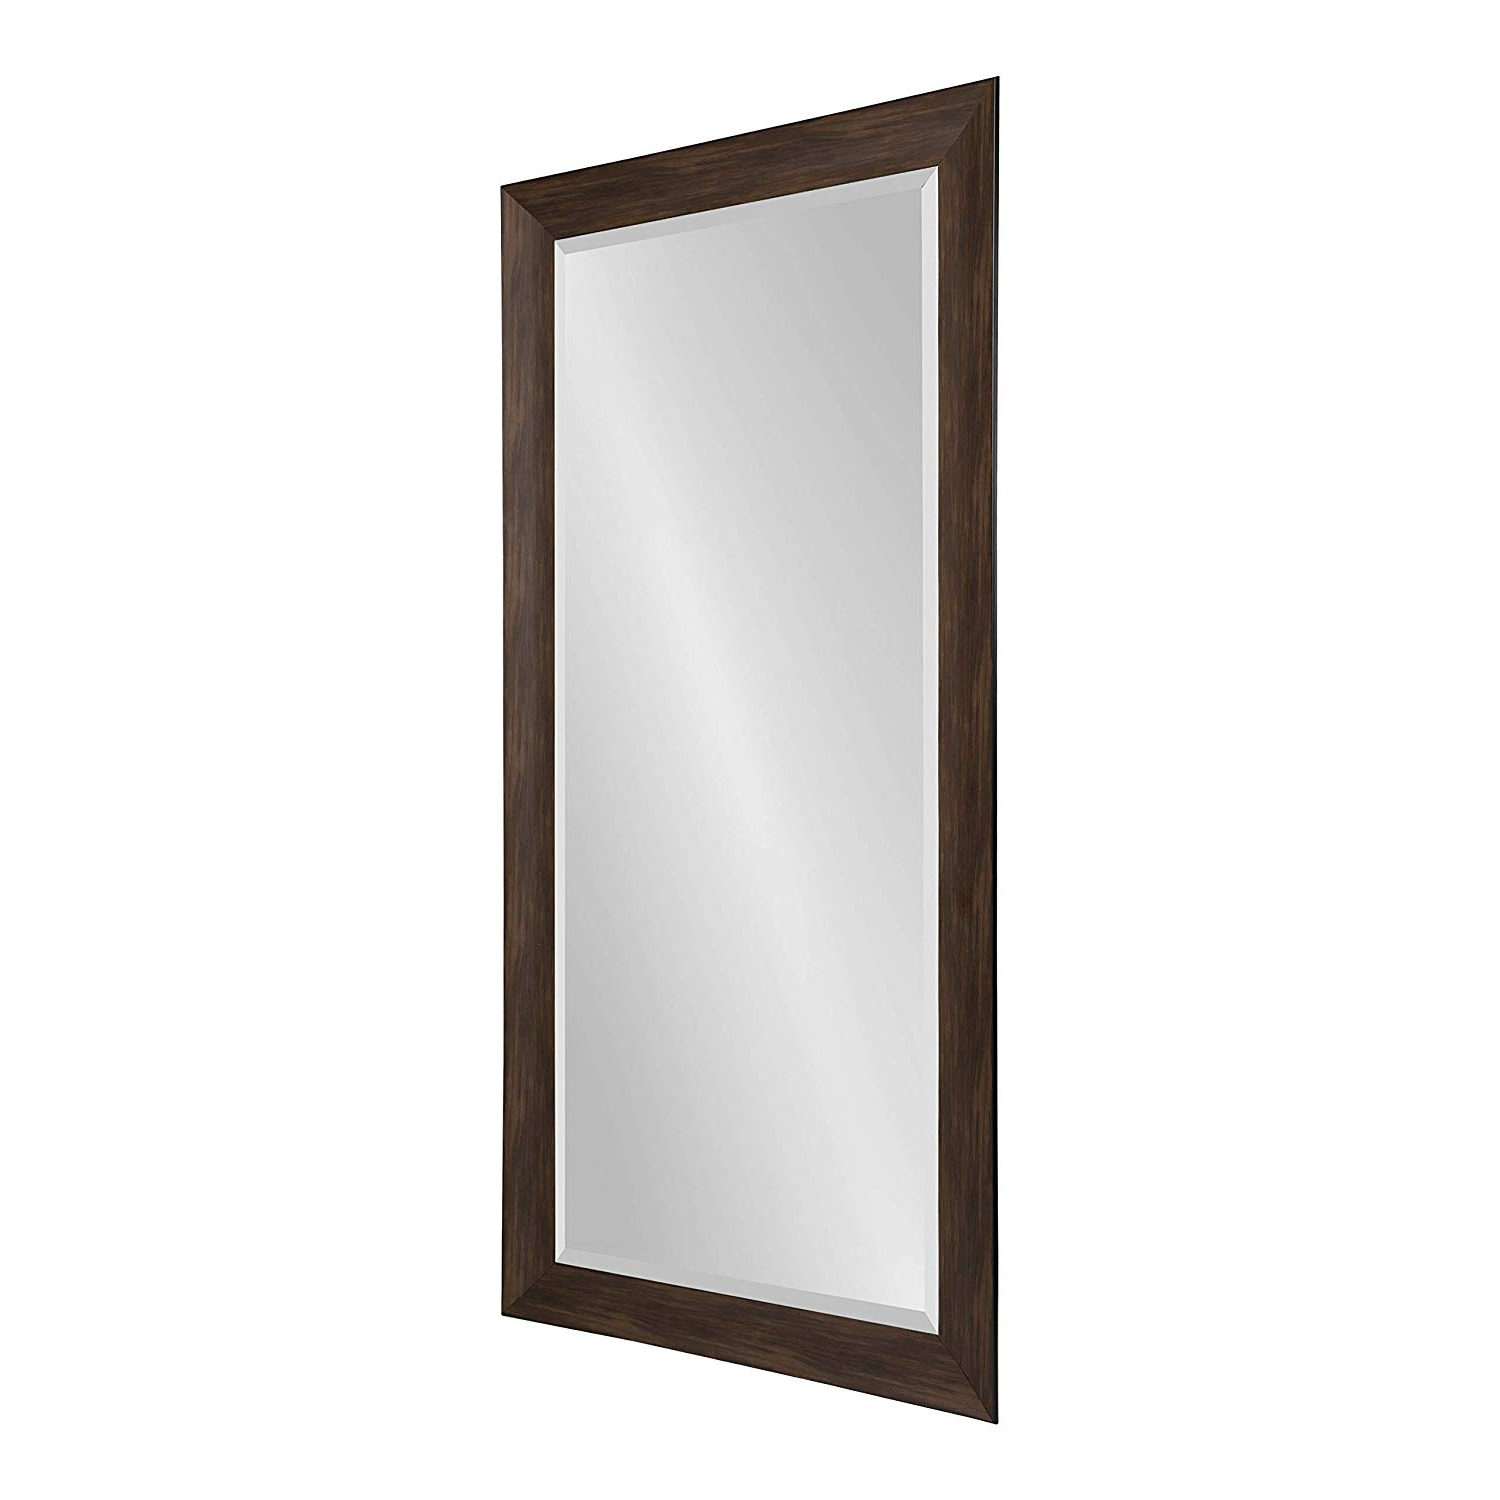 Most Recently Released Large Beveled Wall Mirrors Regarding Amazon: Kate And Laurel Tahoe Extra Large Beveled Wall Mirror (View 14 of 20)